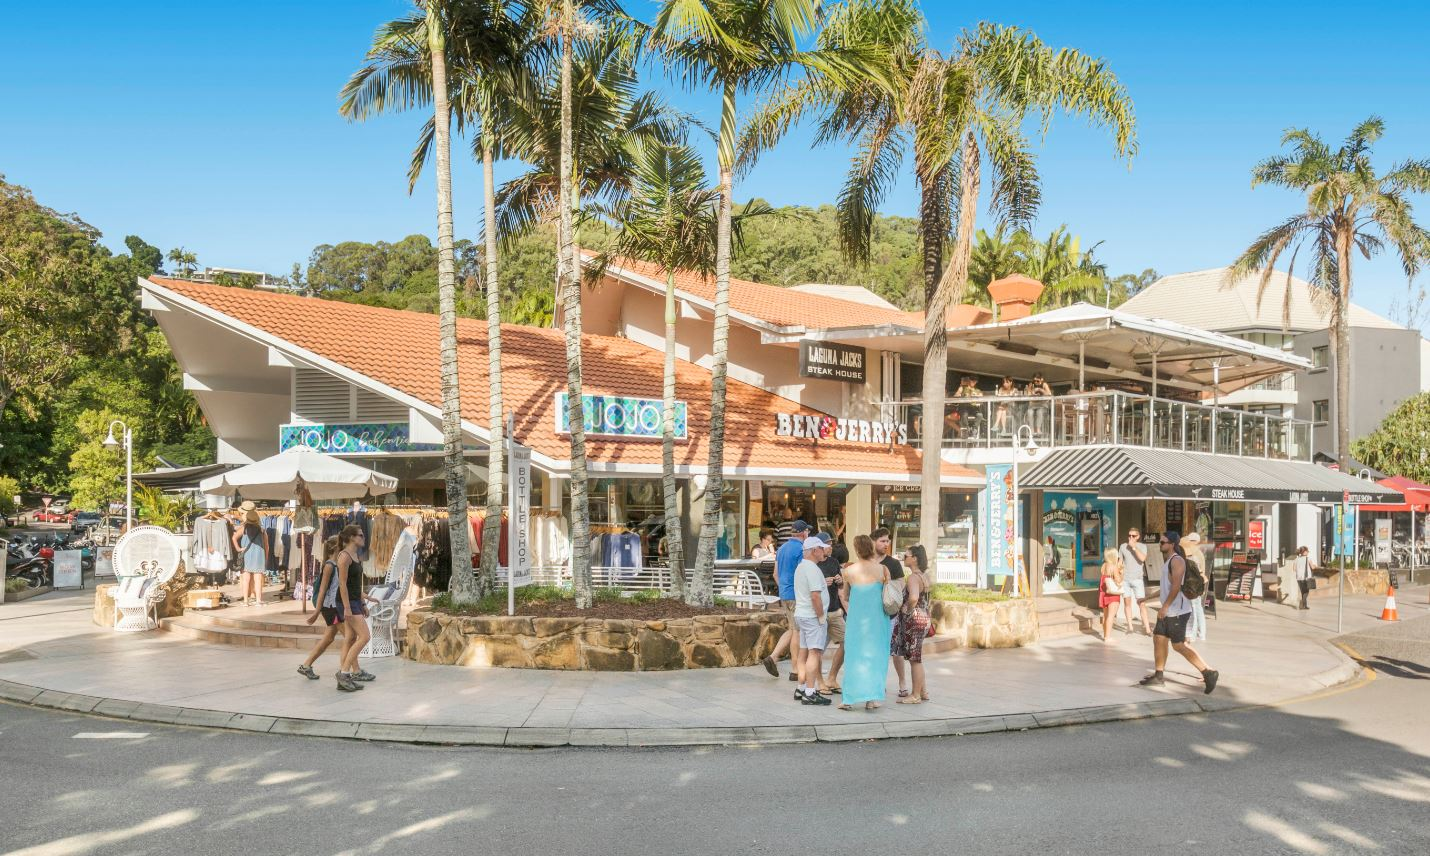 50 Hastings Street – Noosa Heads' renowned tourist hub – the two storey retail asset comprises six tenancies, including the popular Laguna Jacks bar and restaurant, a 7 Eleven, Ben & Jerry's Ice Creamery and Betty's Burgers.